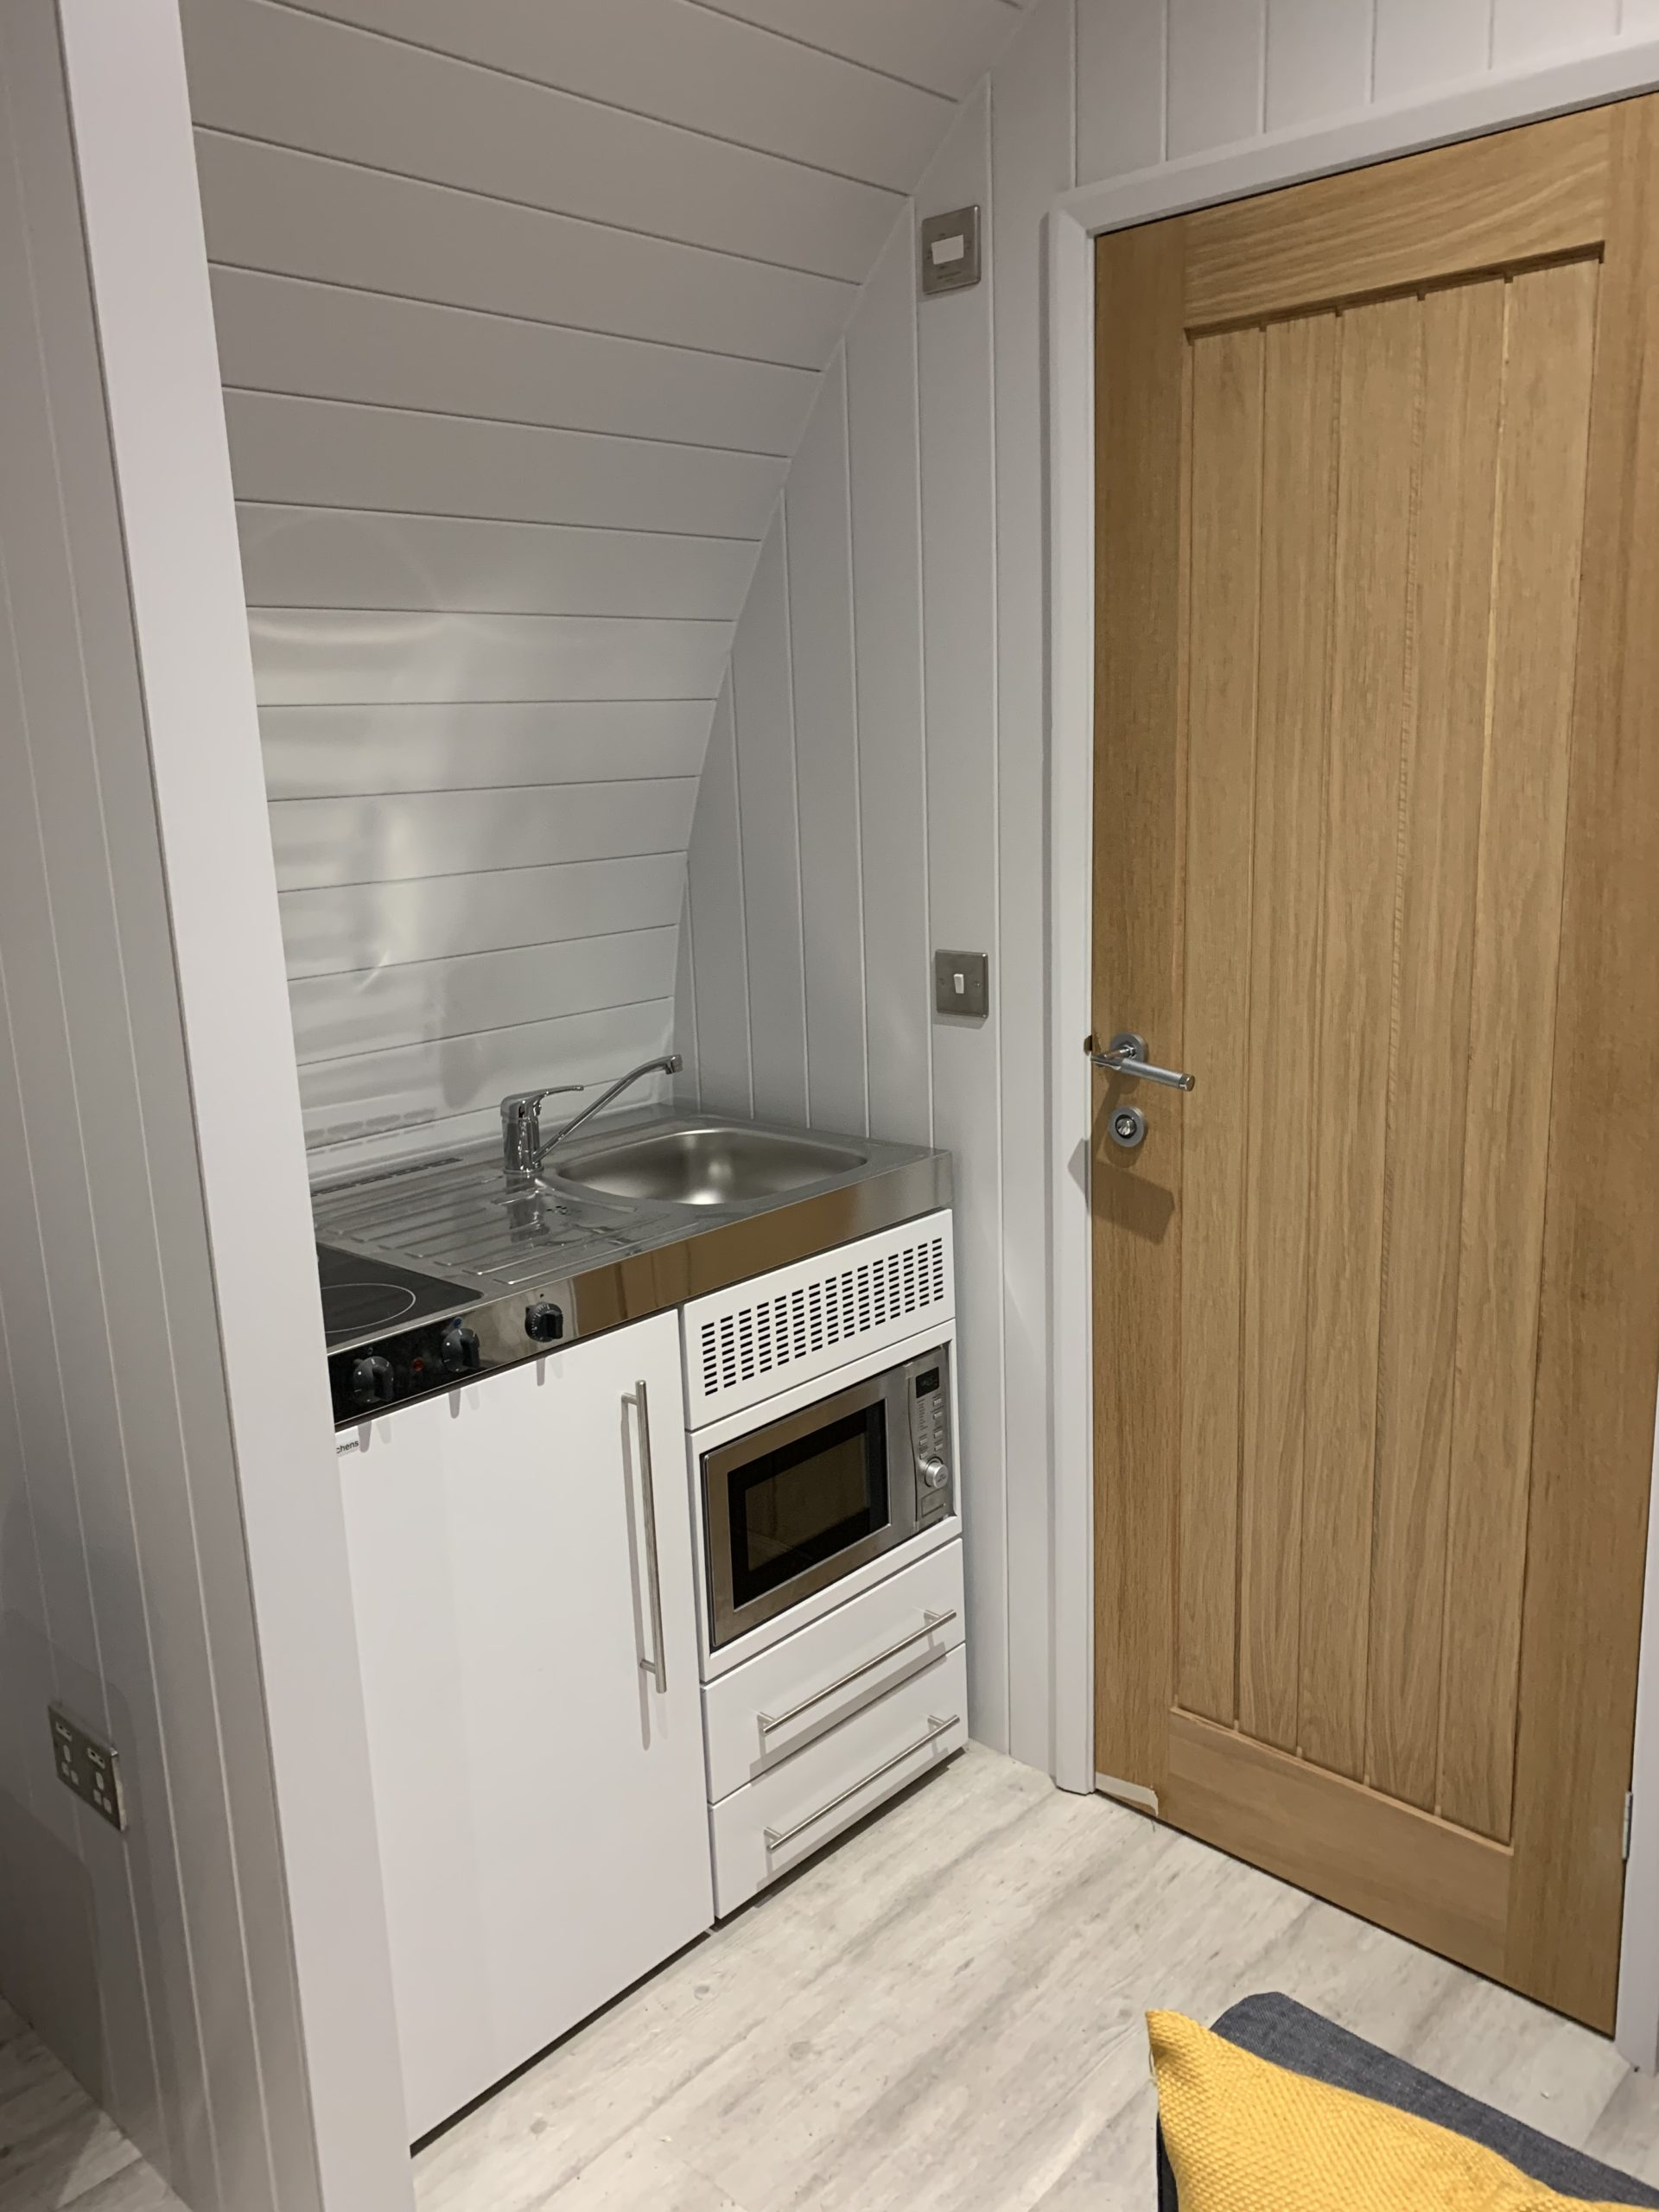 glamping pod interior shot of kitchen area with sink, hob and microwave - glamping pods for outdoor